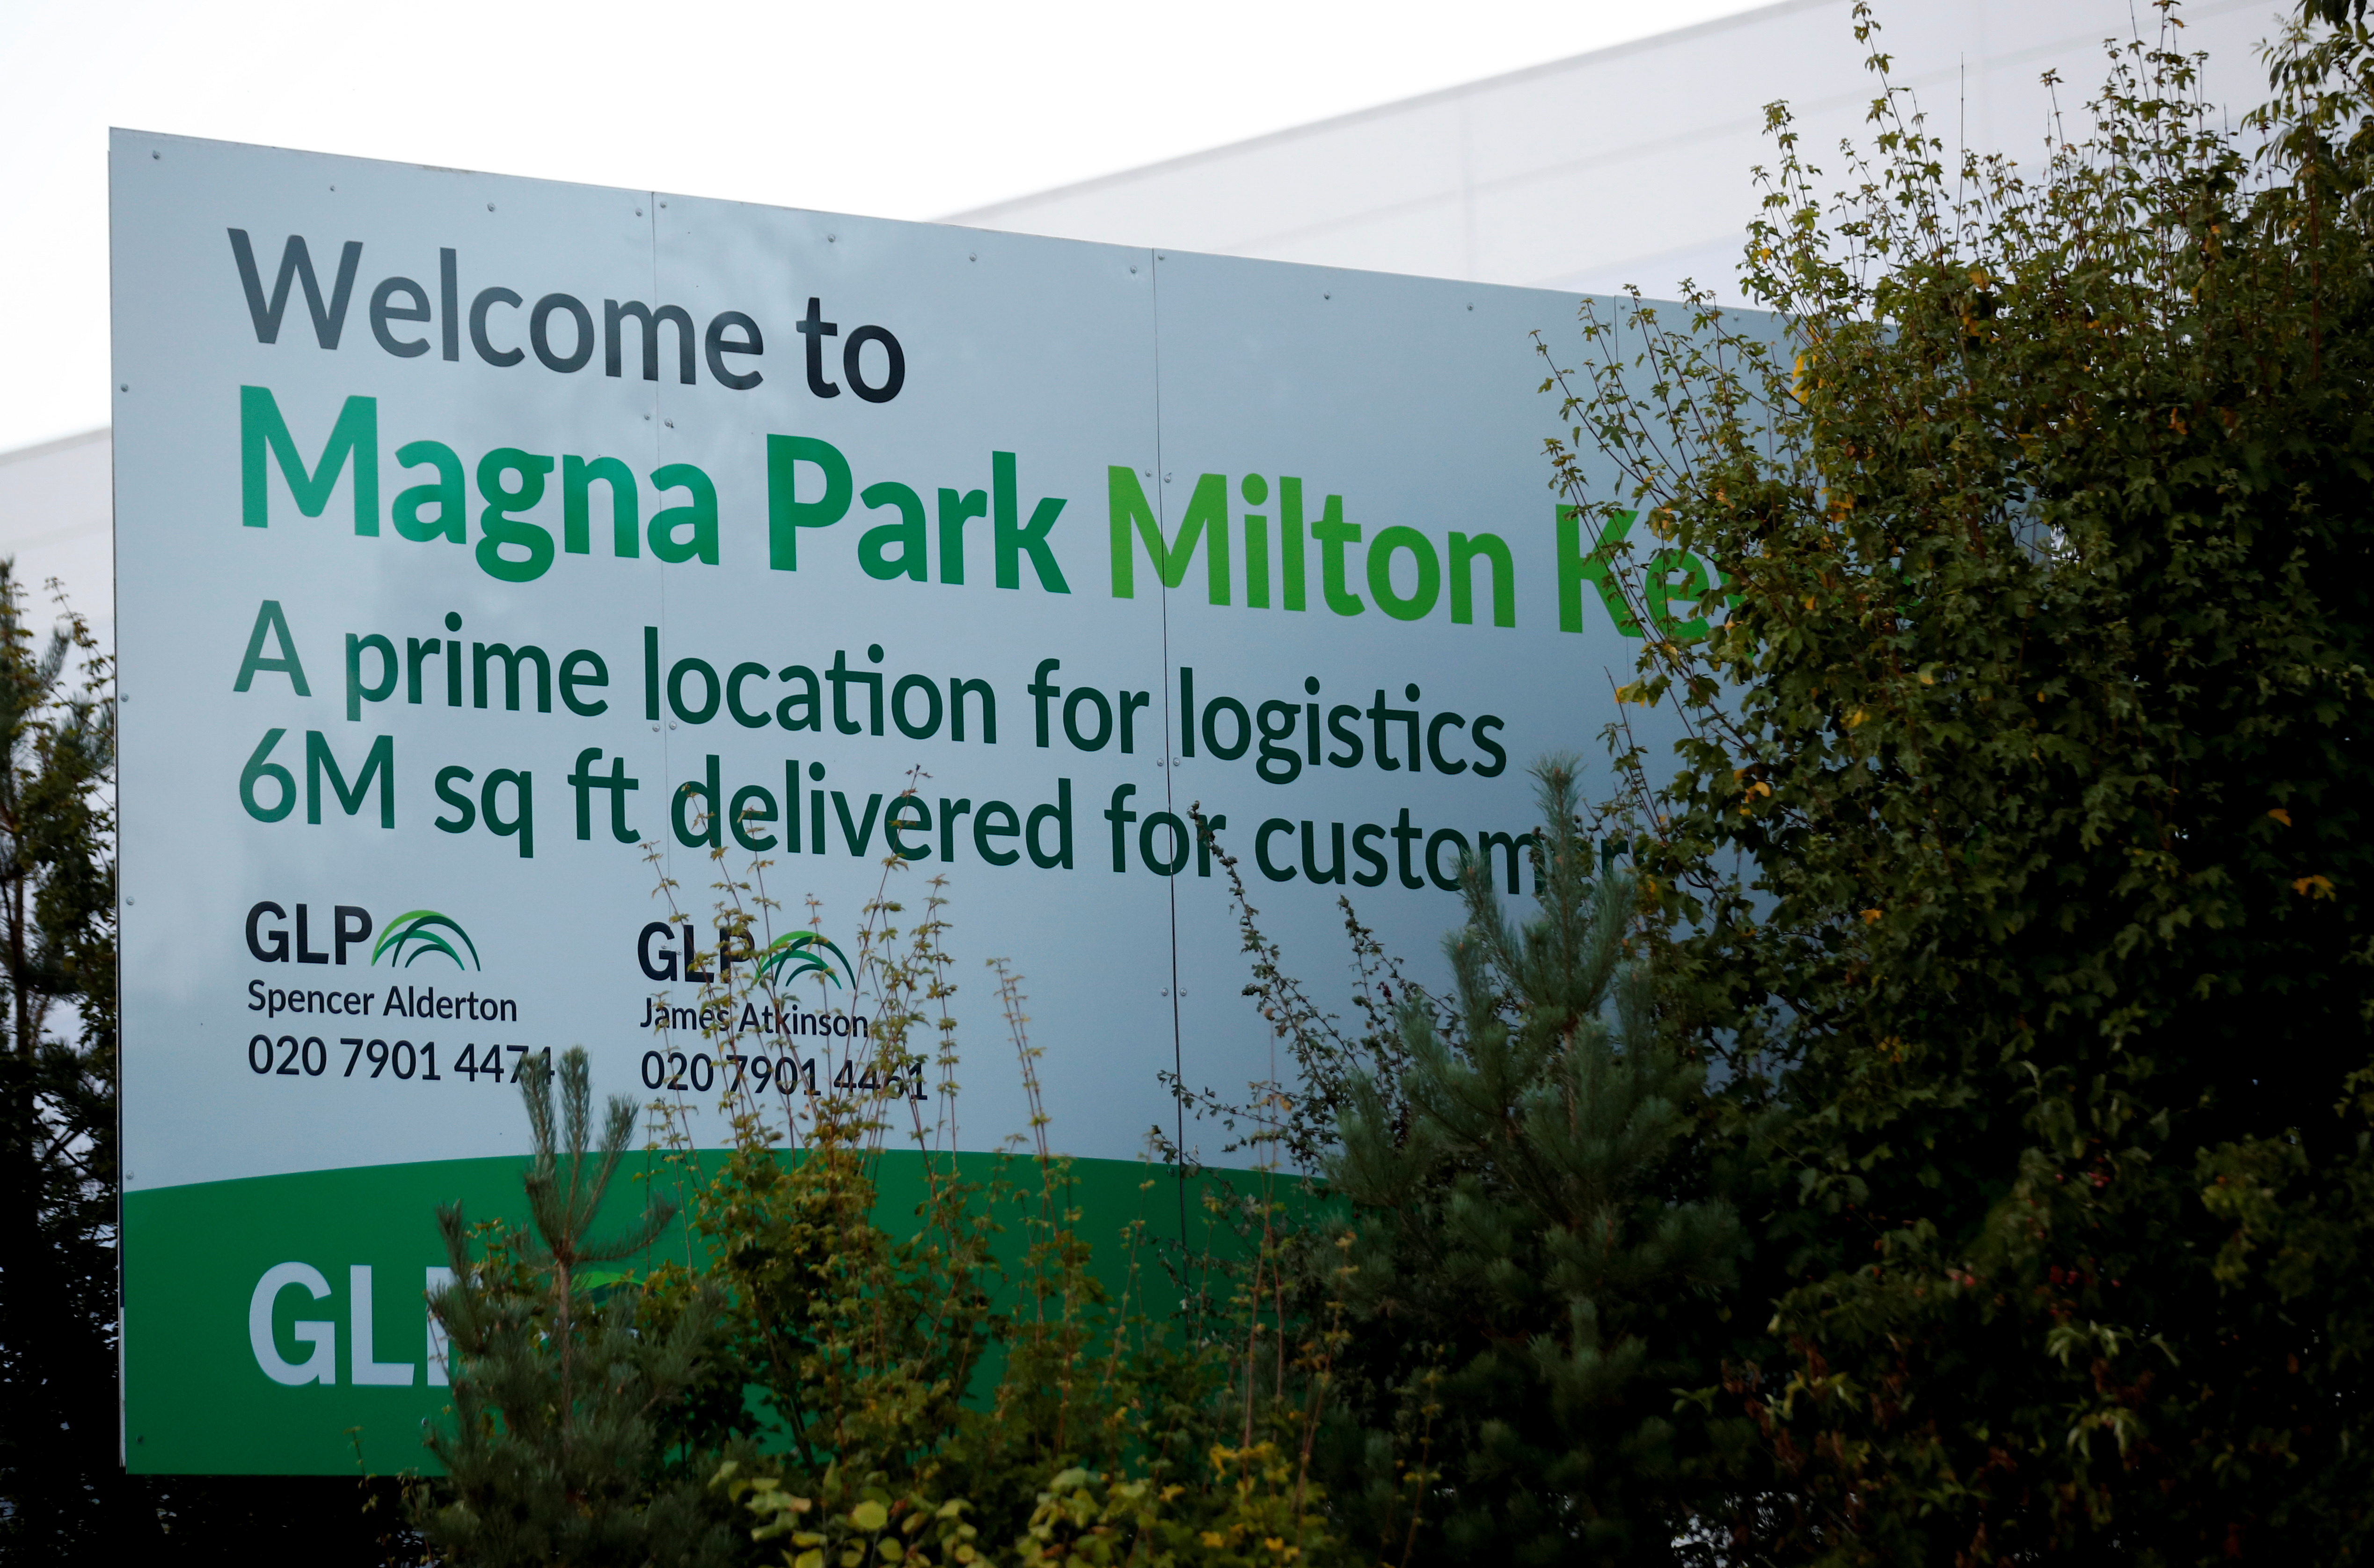 A welcome sign is seen at Magna Park in Milton Keynes, Britain, September 26, 2021. REUTERS/Andrew Boyers